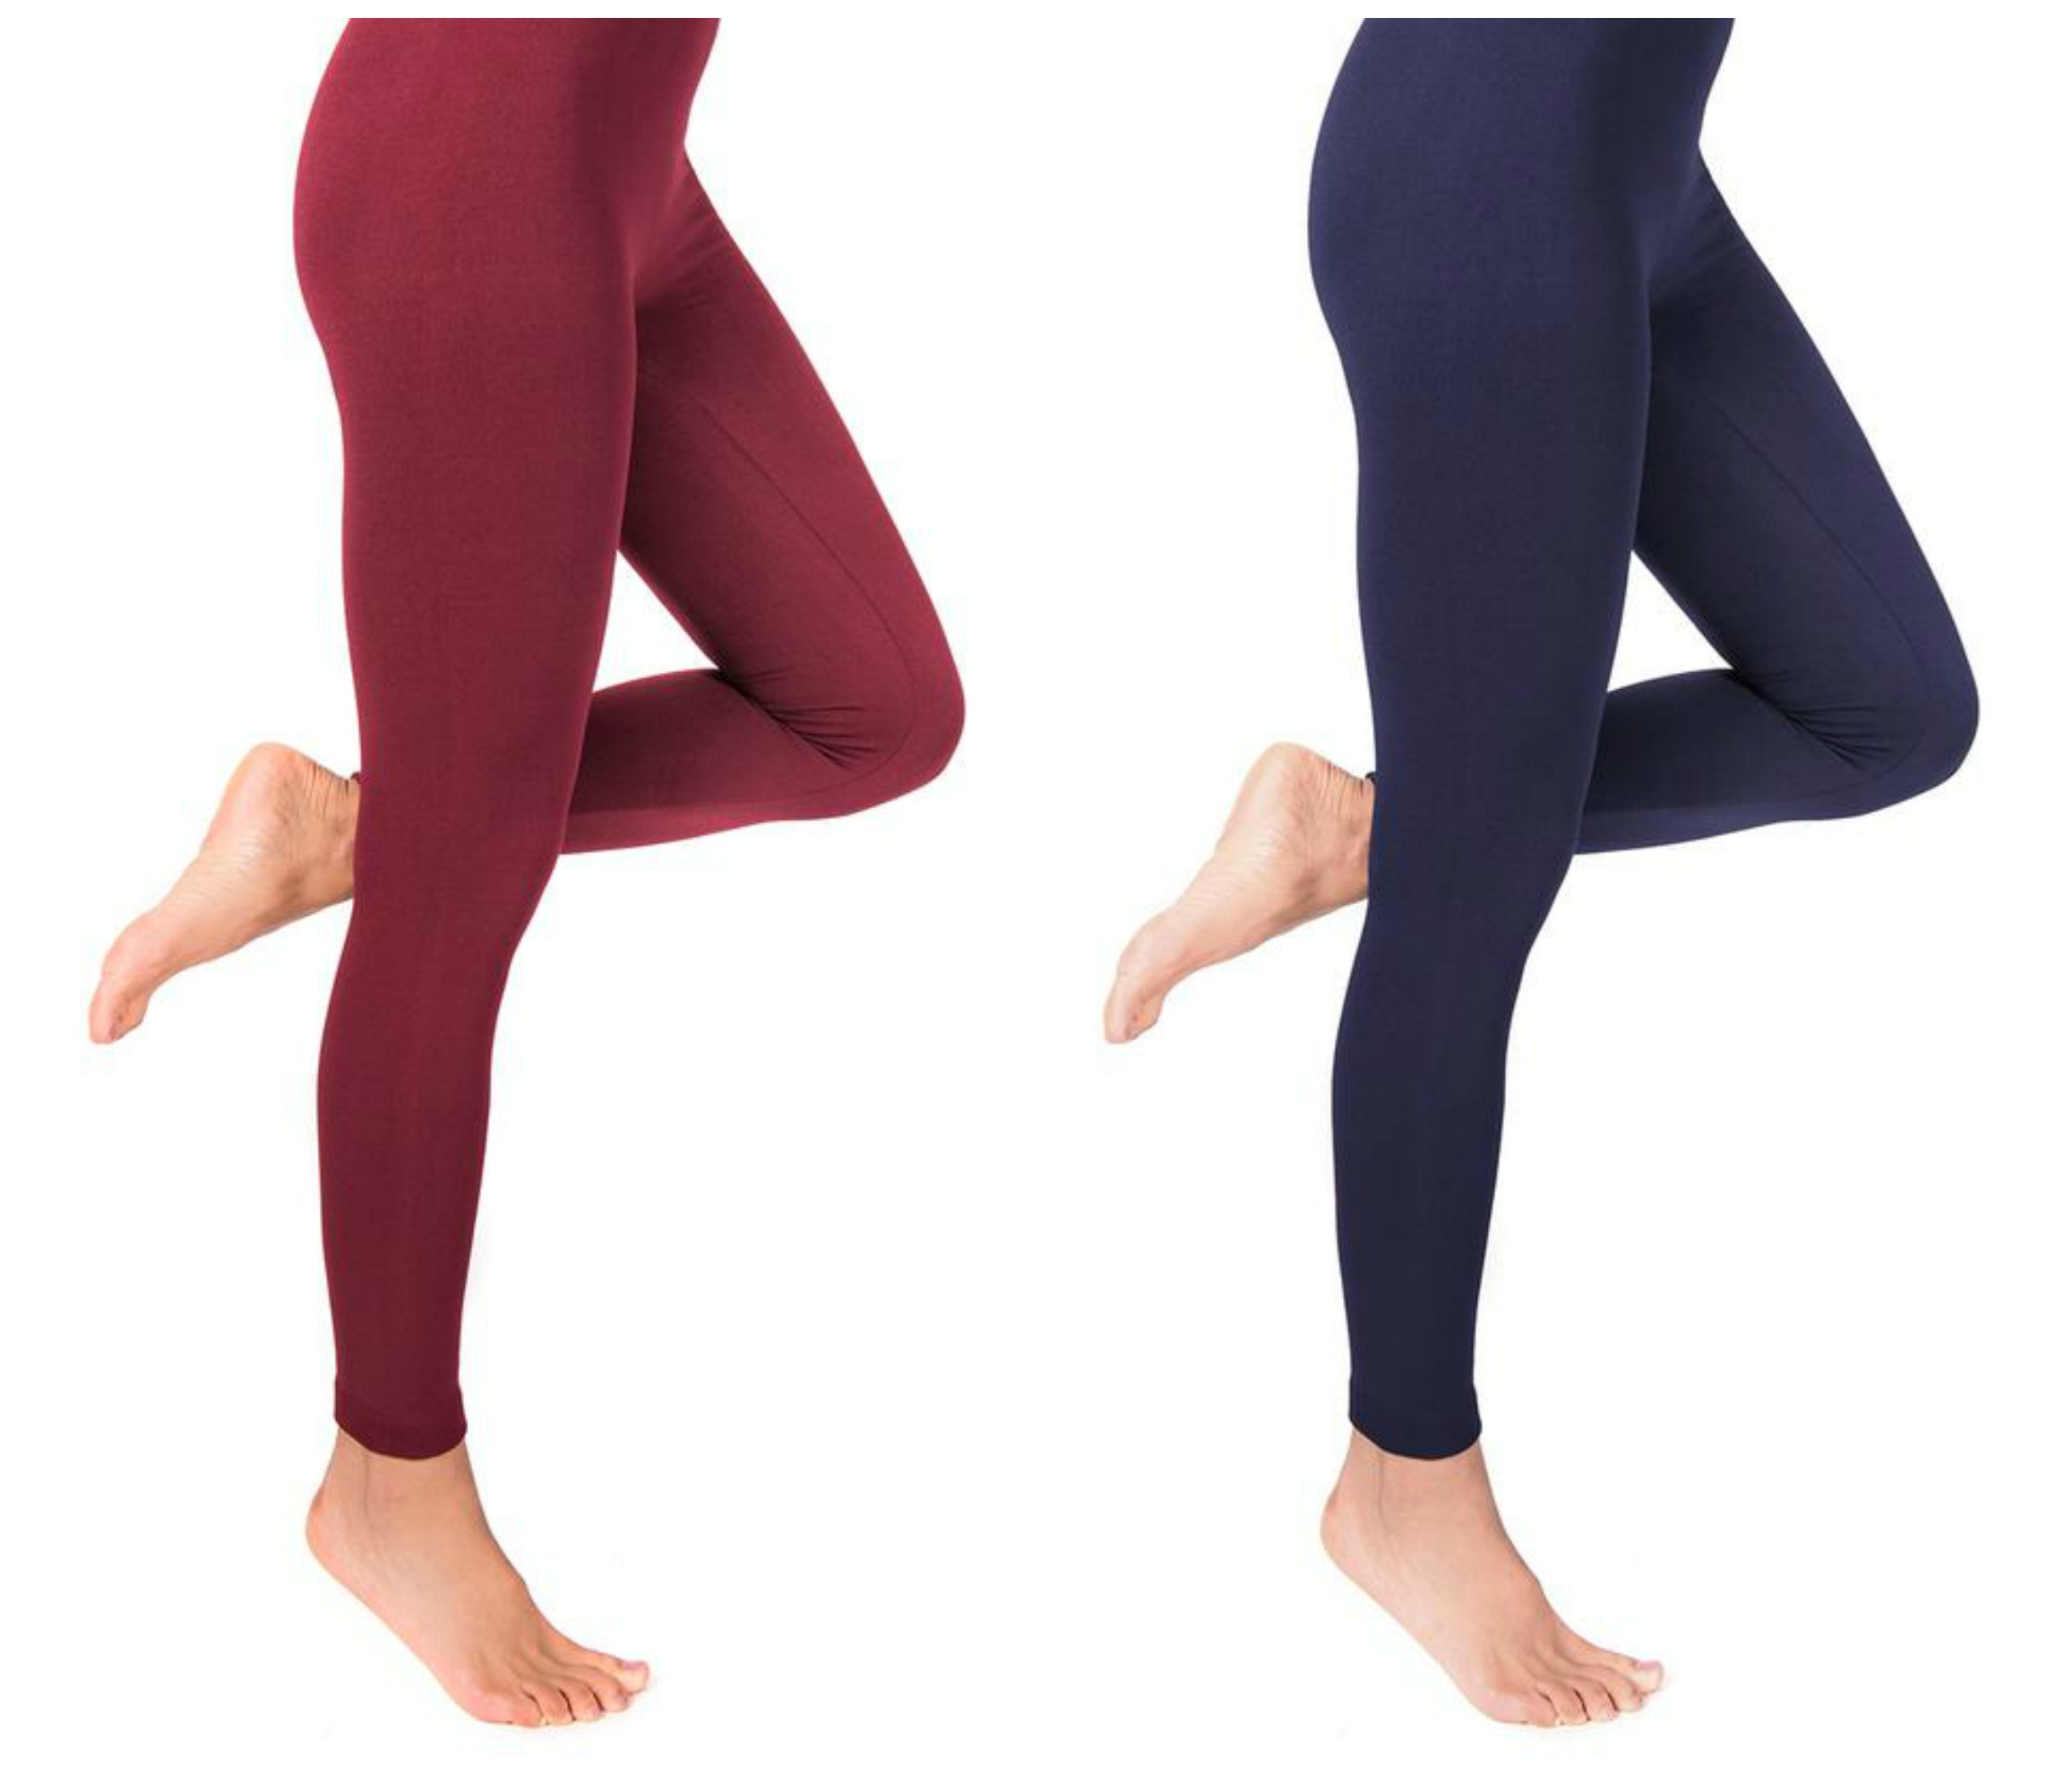 Muk Luks Women's Leggings Only $14.99!